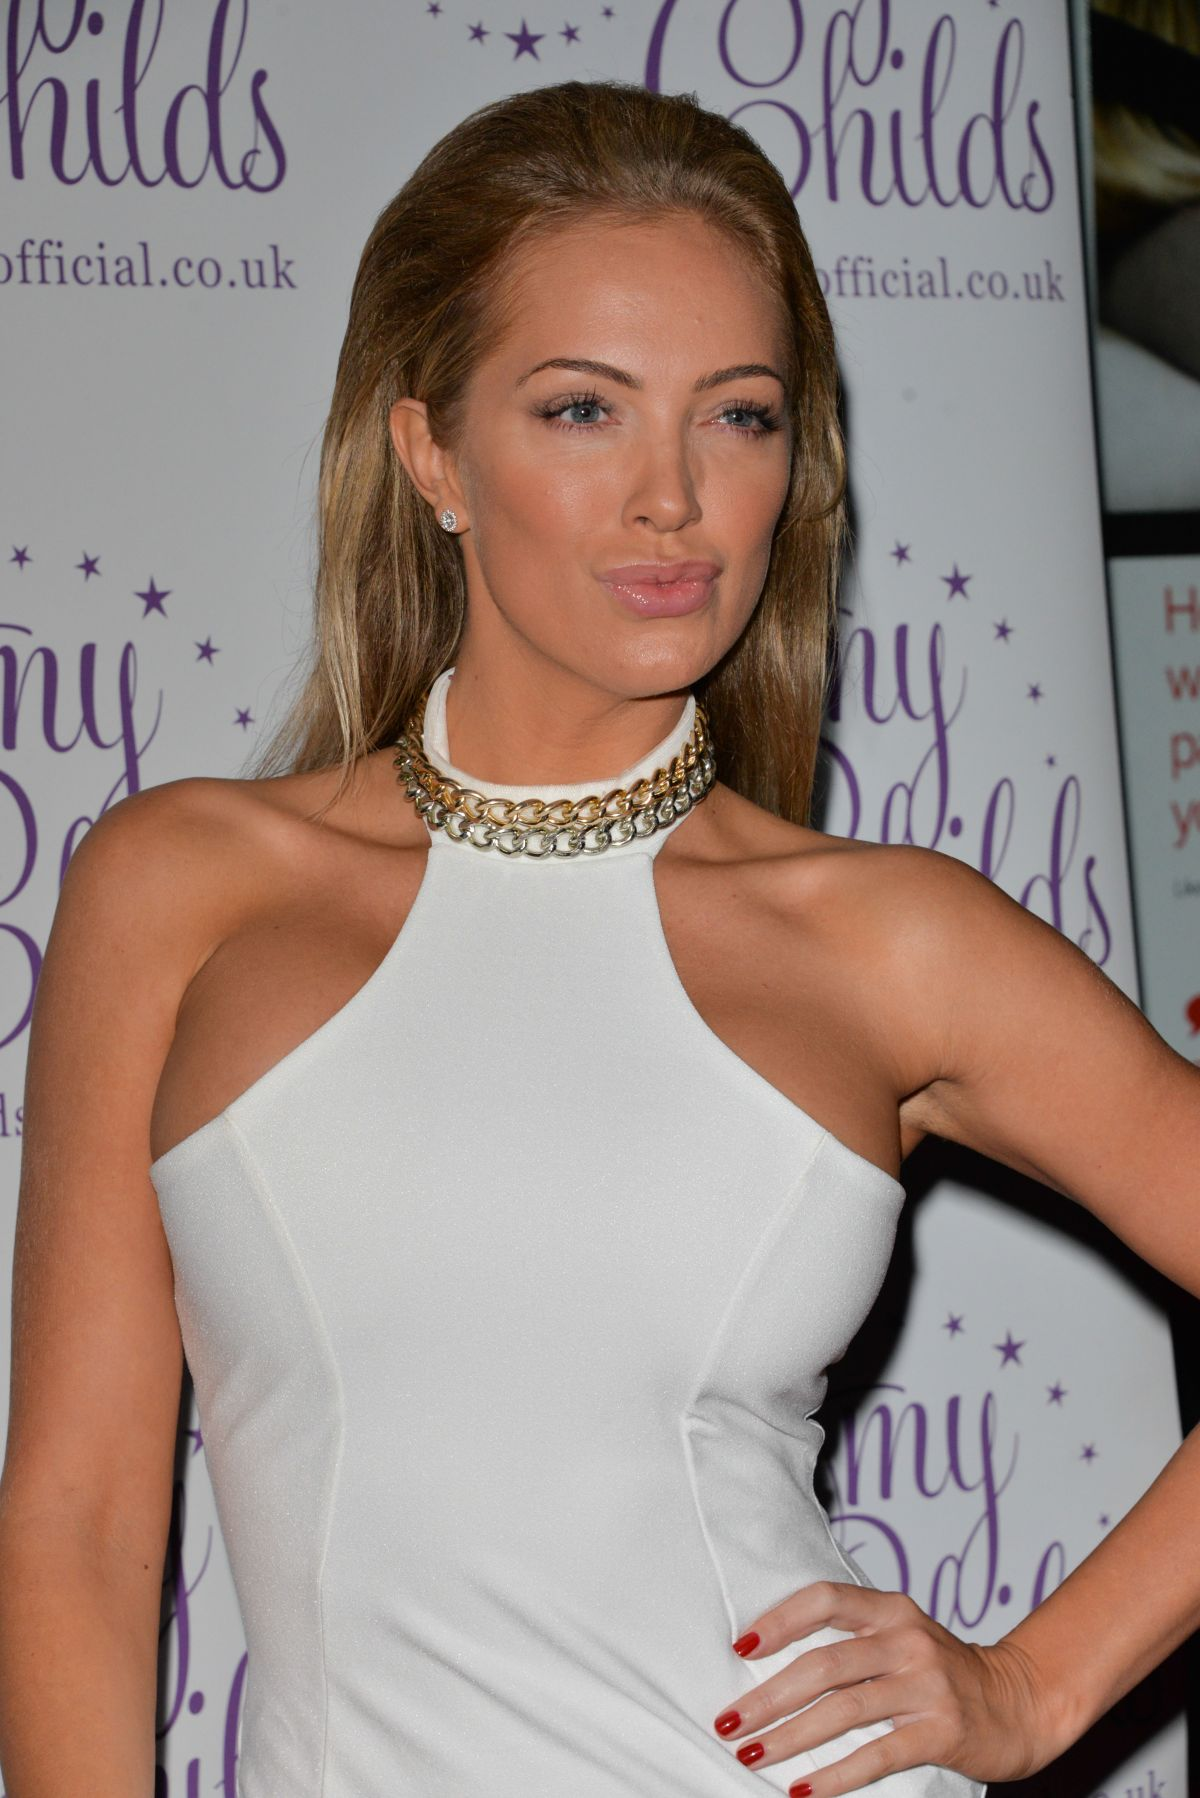 AISLEYNE HORGAN-WALLACE at Amy Childs Clothing 3rd Anniversary Party‏ in London